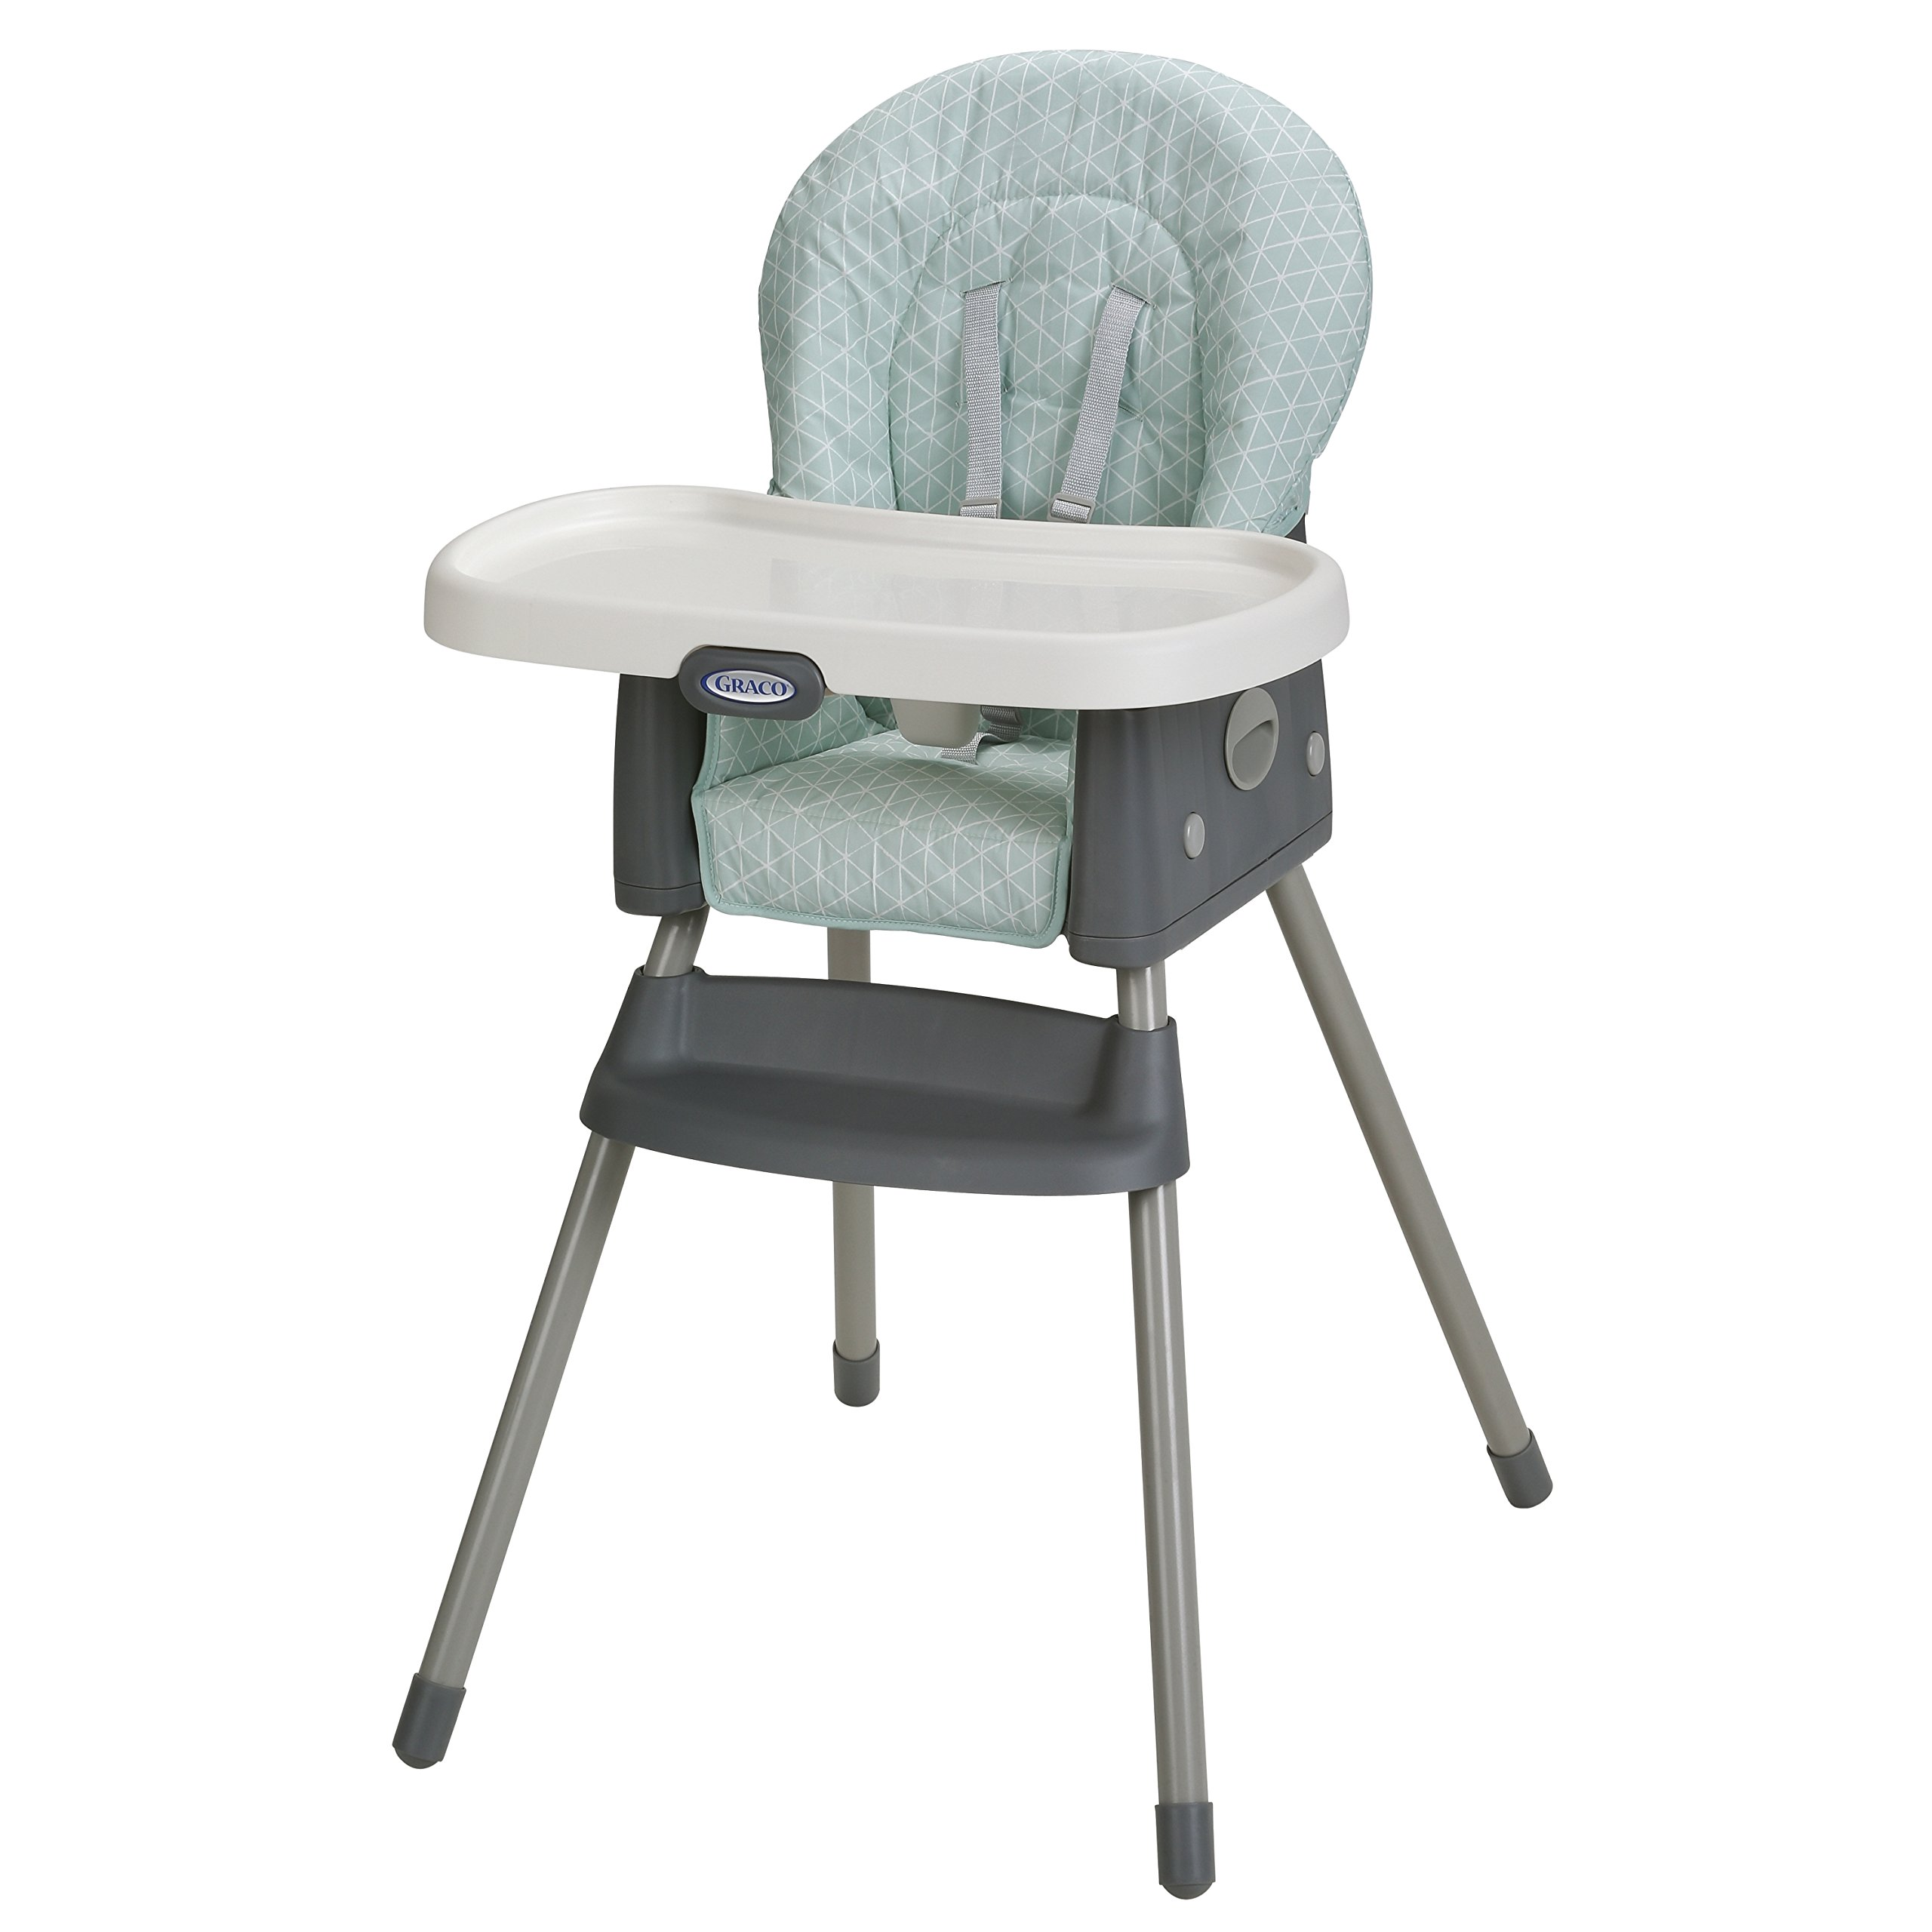 Graco Simple Switch High Chair, Winfield by Graco